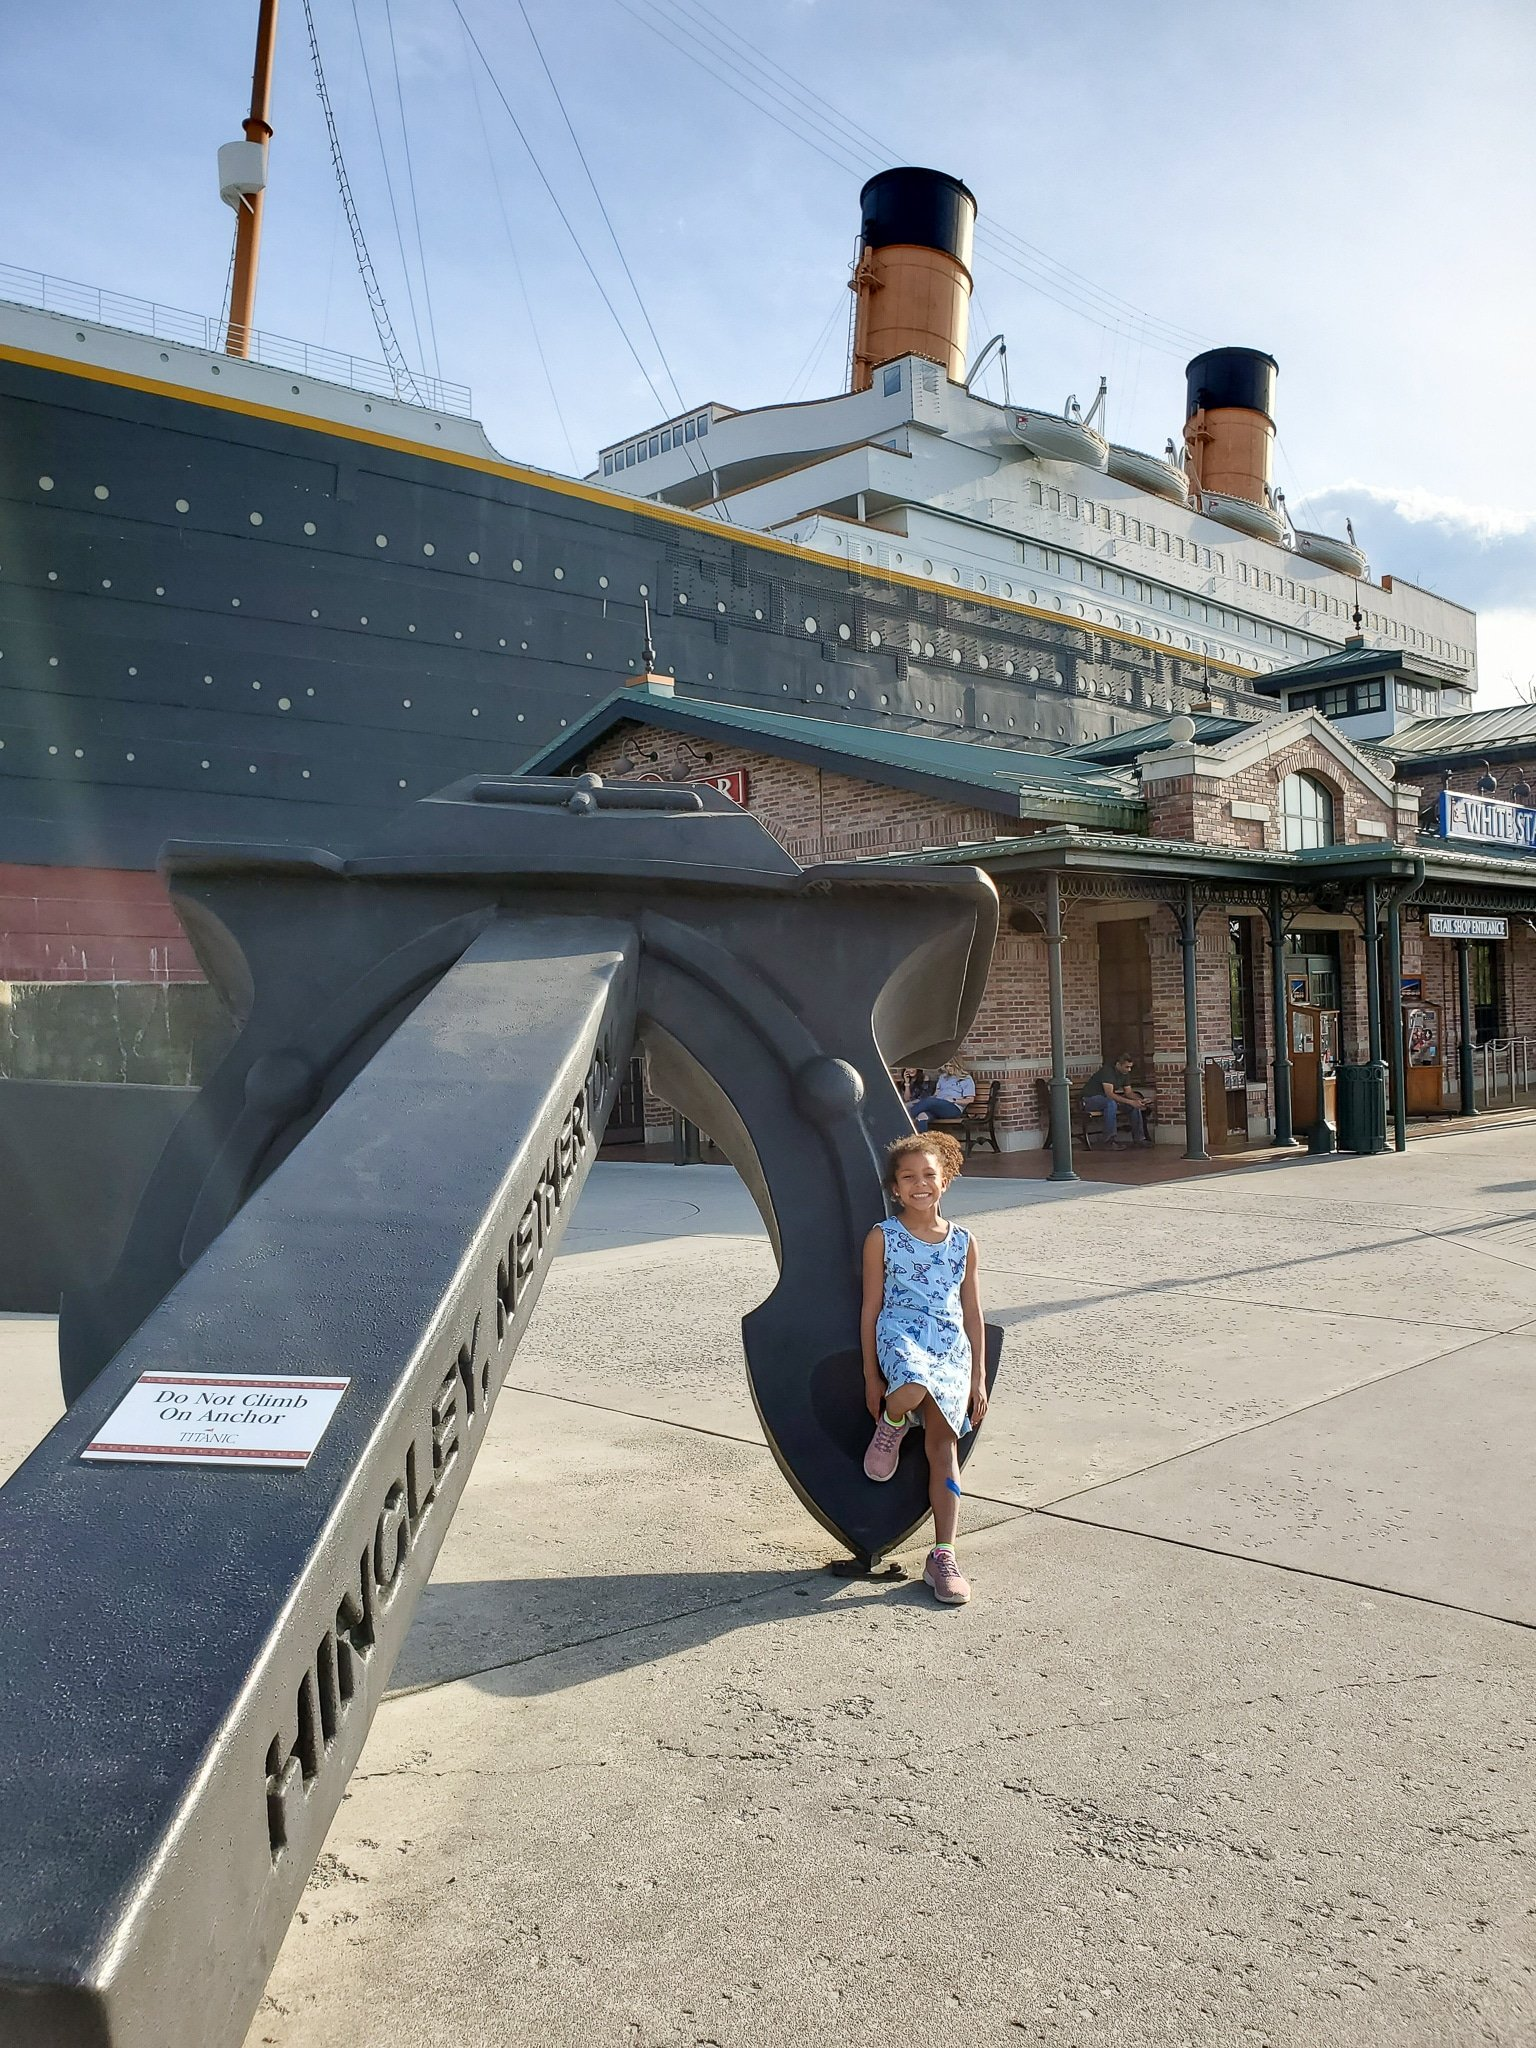 Titanic Museum Pigeon Forge Tennessee. With over 400 real TITANIC artifacts, valued at over four-million dollars, our Permanent, Interactive TITANIC experience goes beyond the obvious!